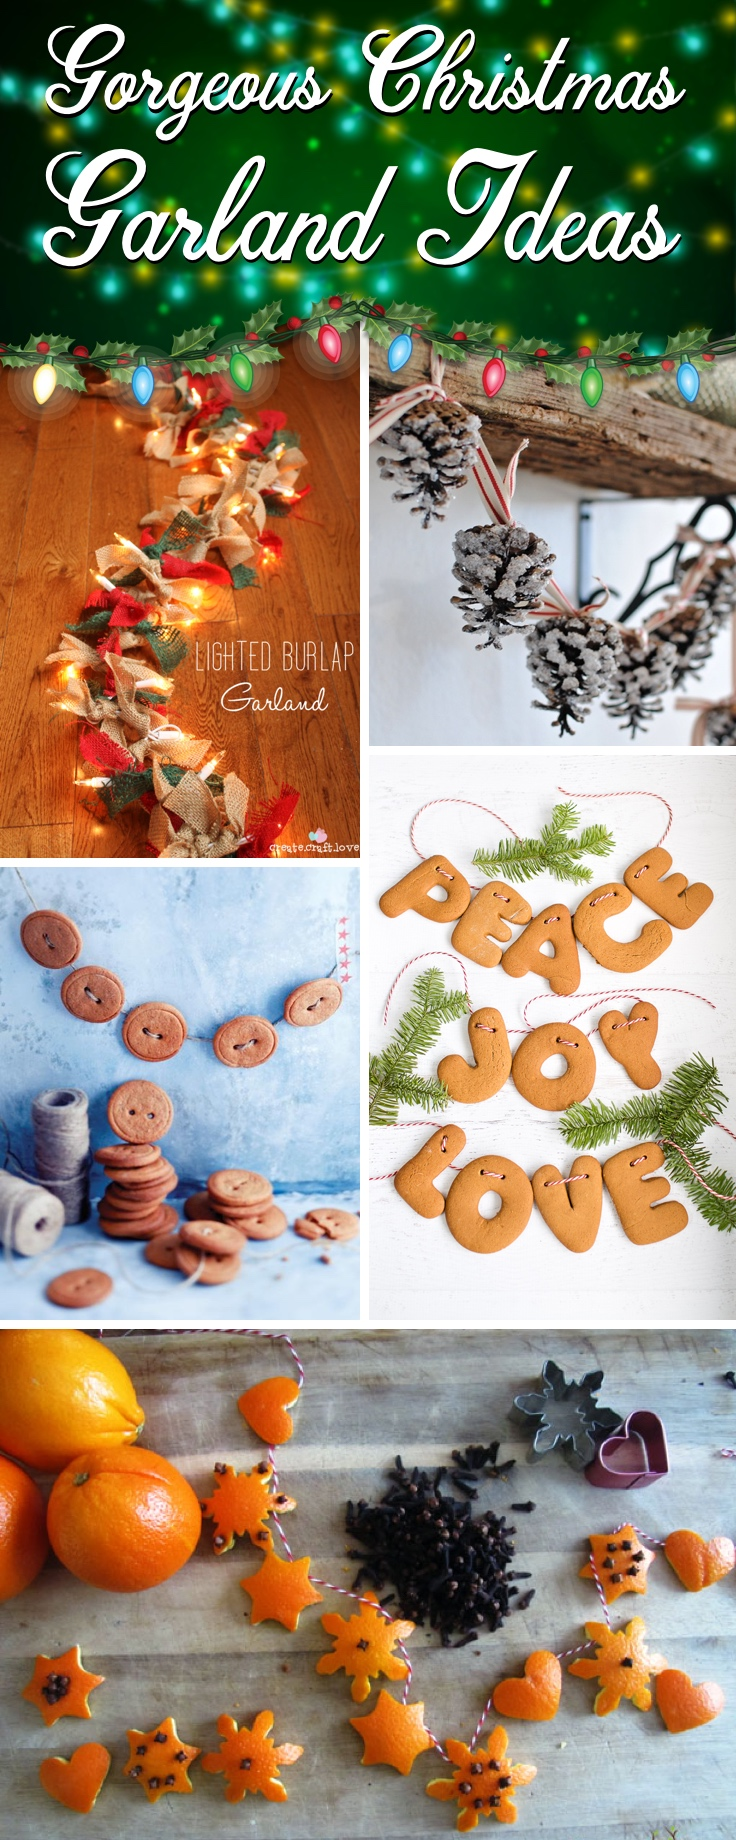 25 Gorgeous Christmas Garland Ideas To Spruce Up Your Home With X